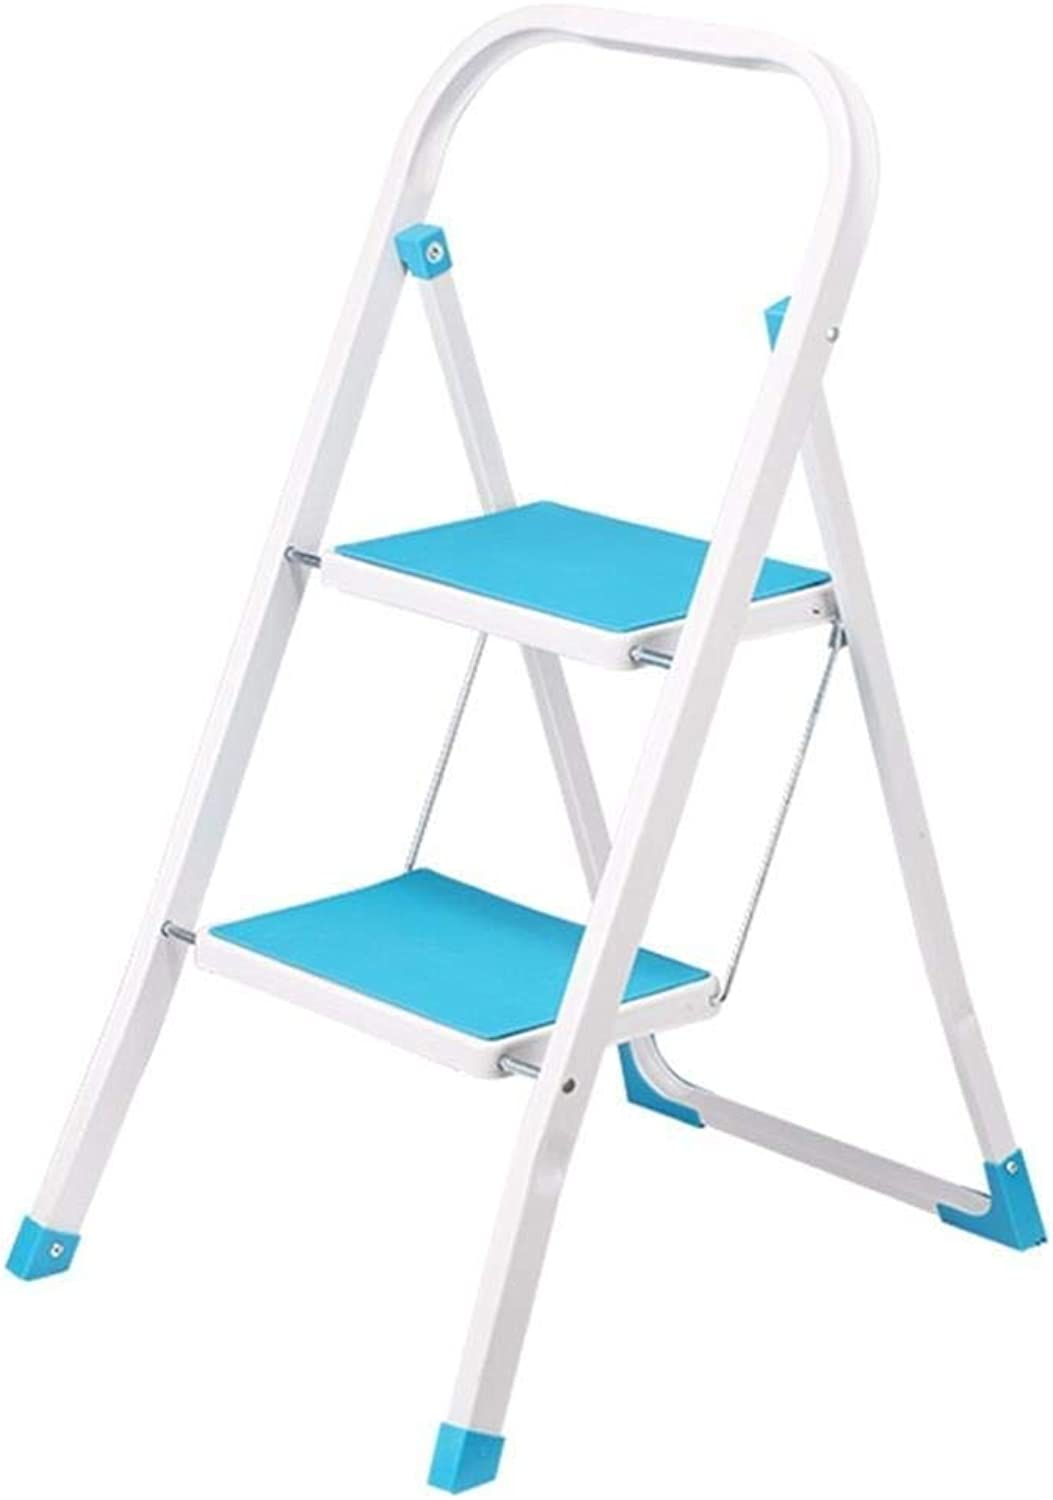 Step Stool 2 Step Iron Folding Ladder Stool with armrest Non-Slip Tread Thickening Household Portable Gardening Kitchen Stool Ladder ladders Step Stool (color   blue)